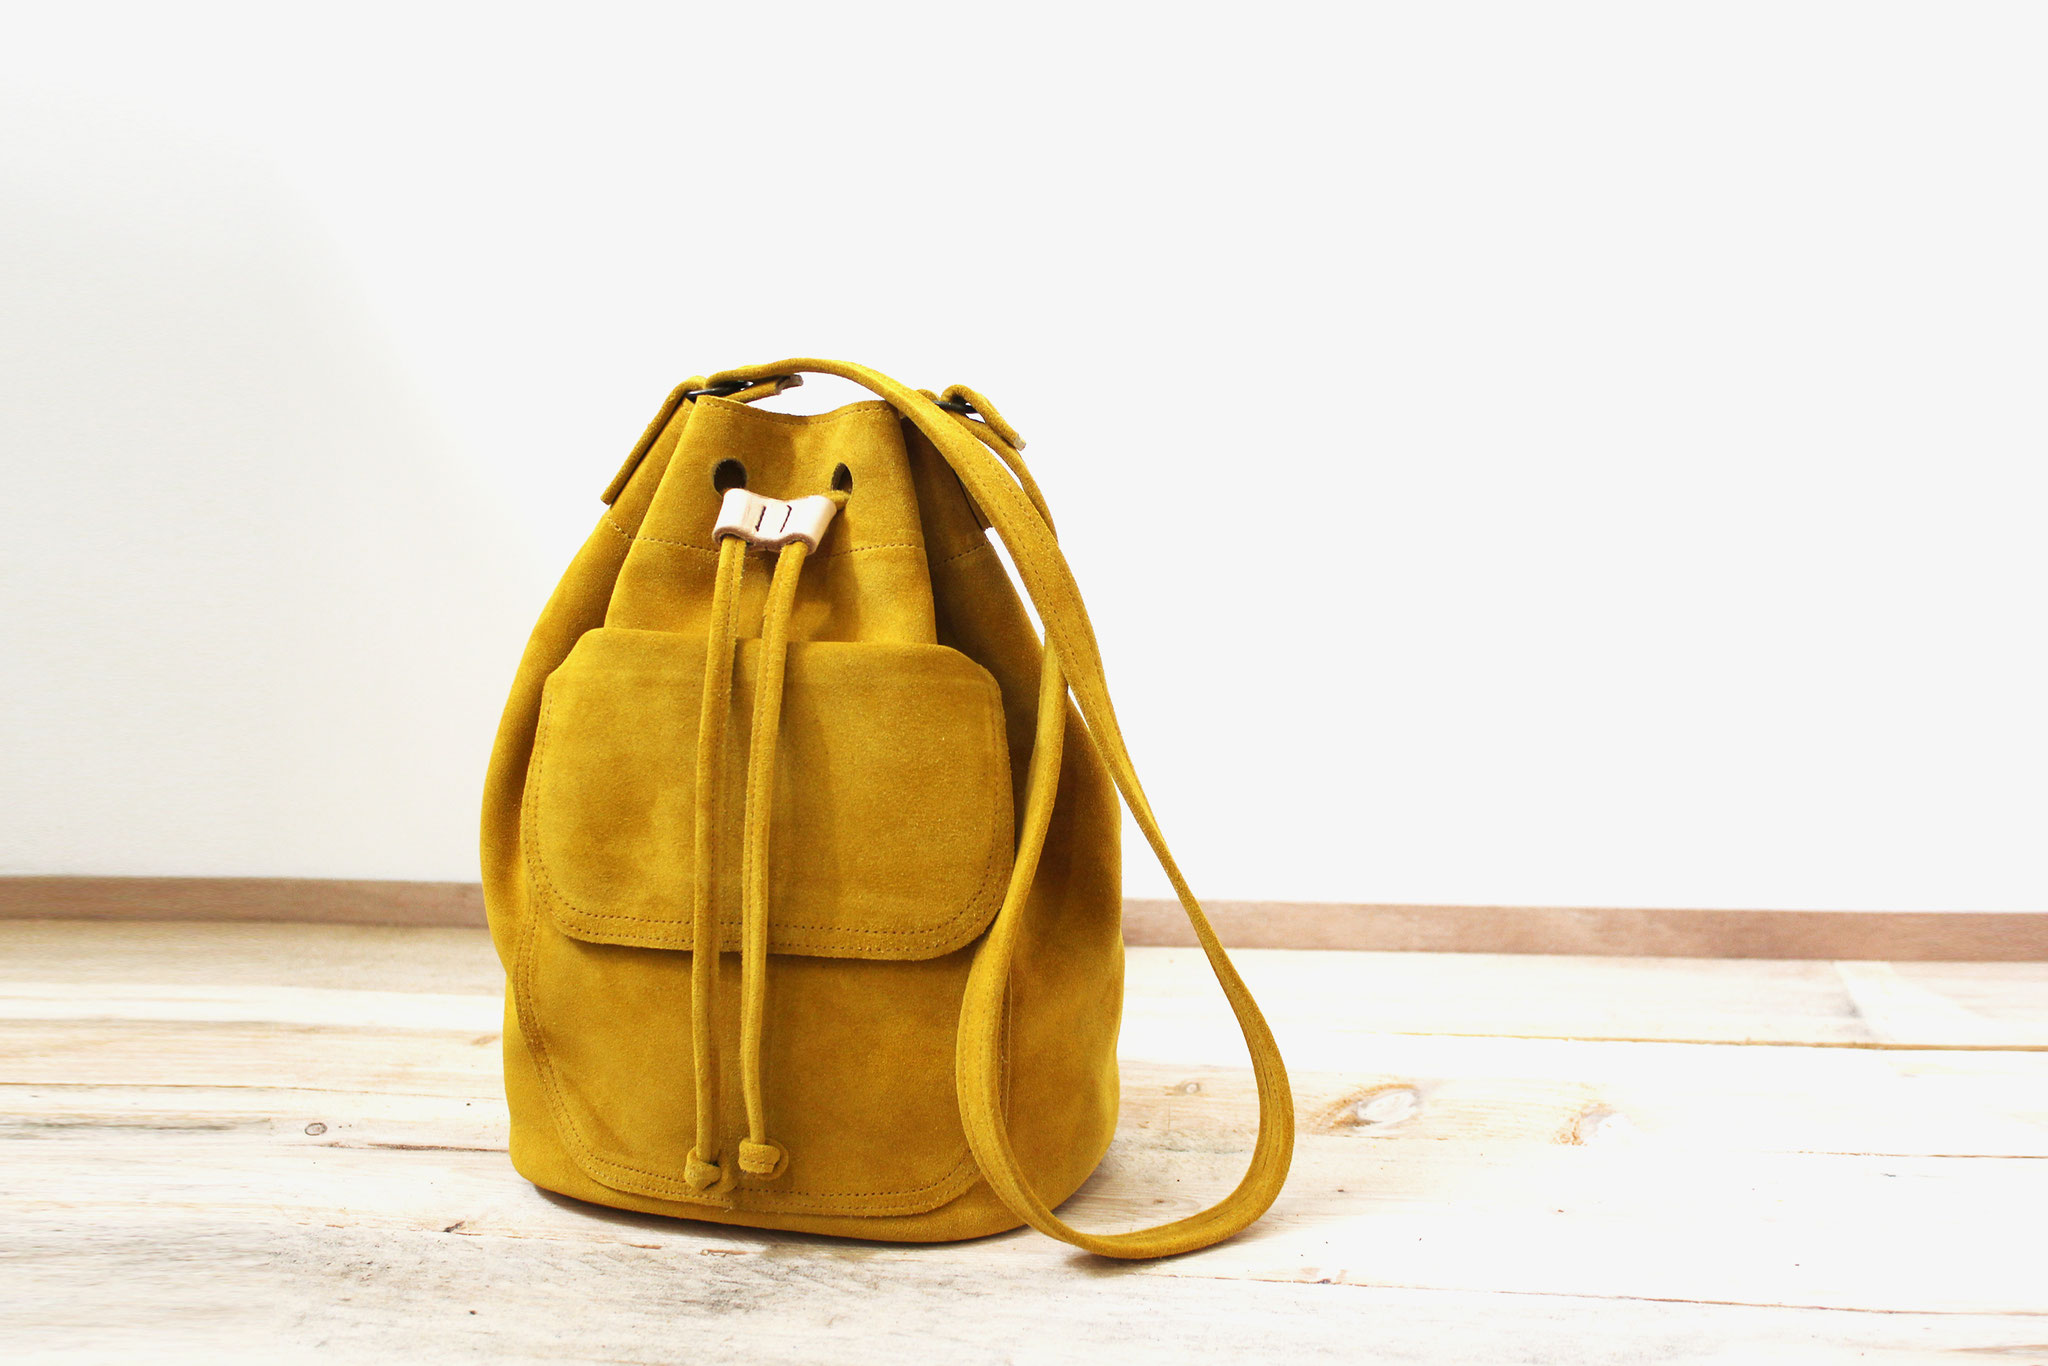 Sac seau jaune moutarde